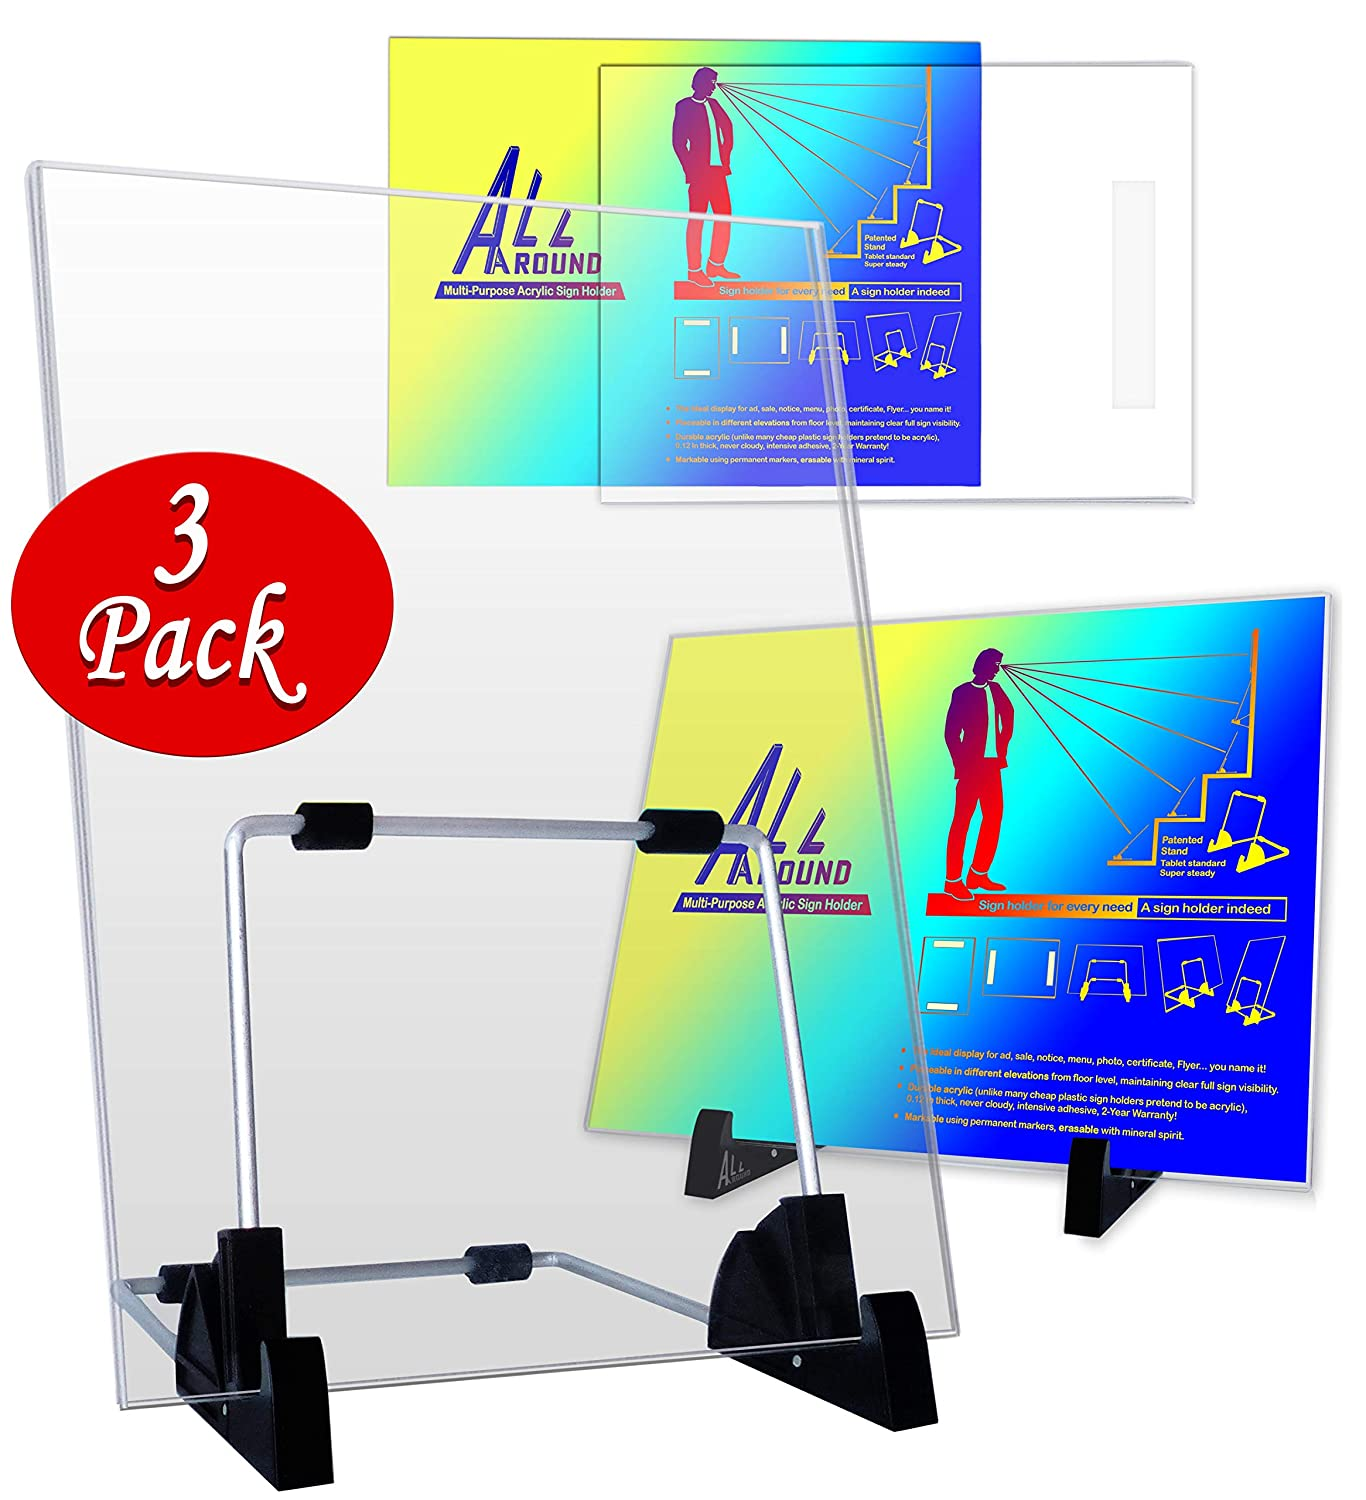 Customisable A4 Perspex Display Stand Double Sided Wall Mounted Landscape Portrait Lean Back Angle Menu Sign 3 mm 3-Pack 2-Year Warranty